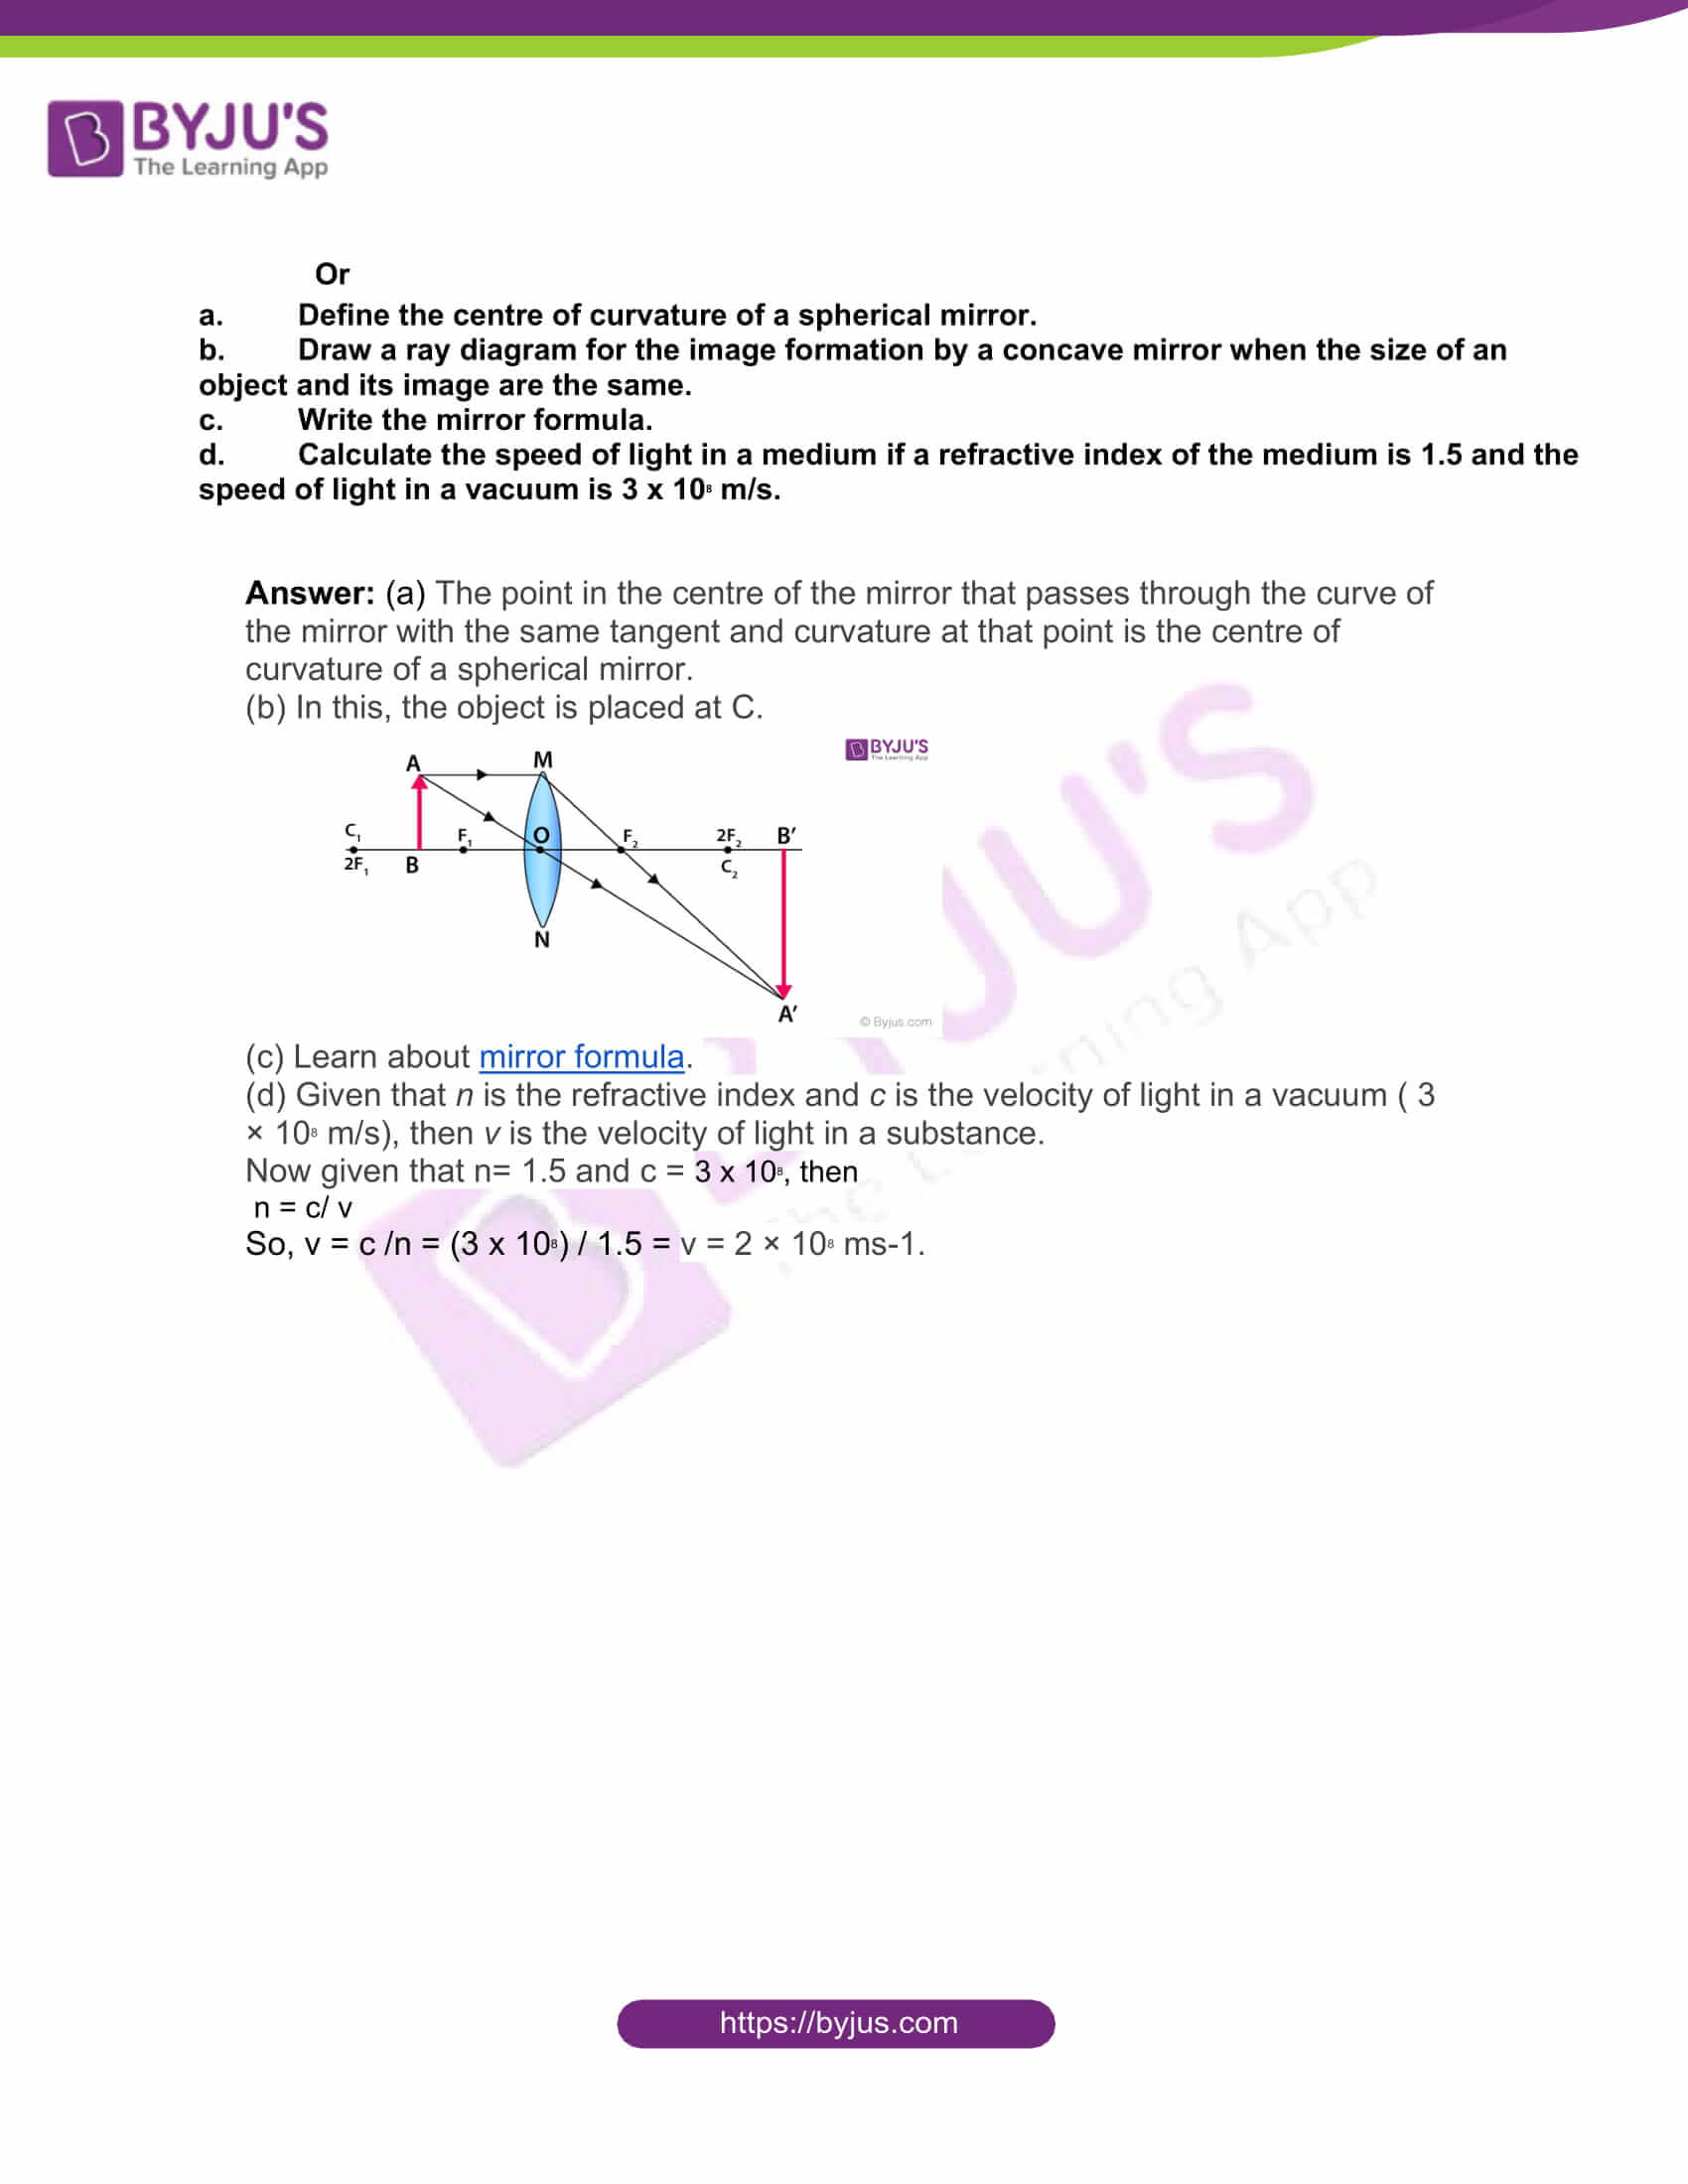 rajasthan board class 10 general science 2017 solutions 11